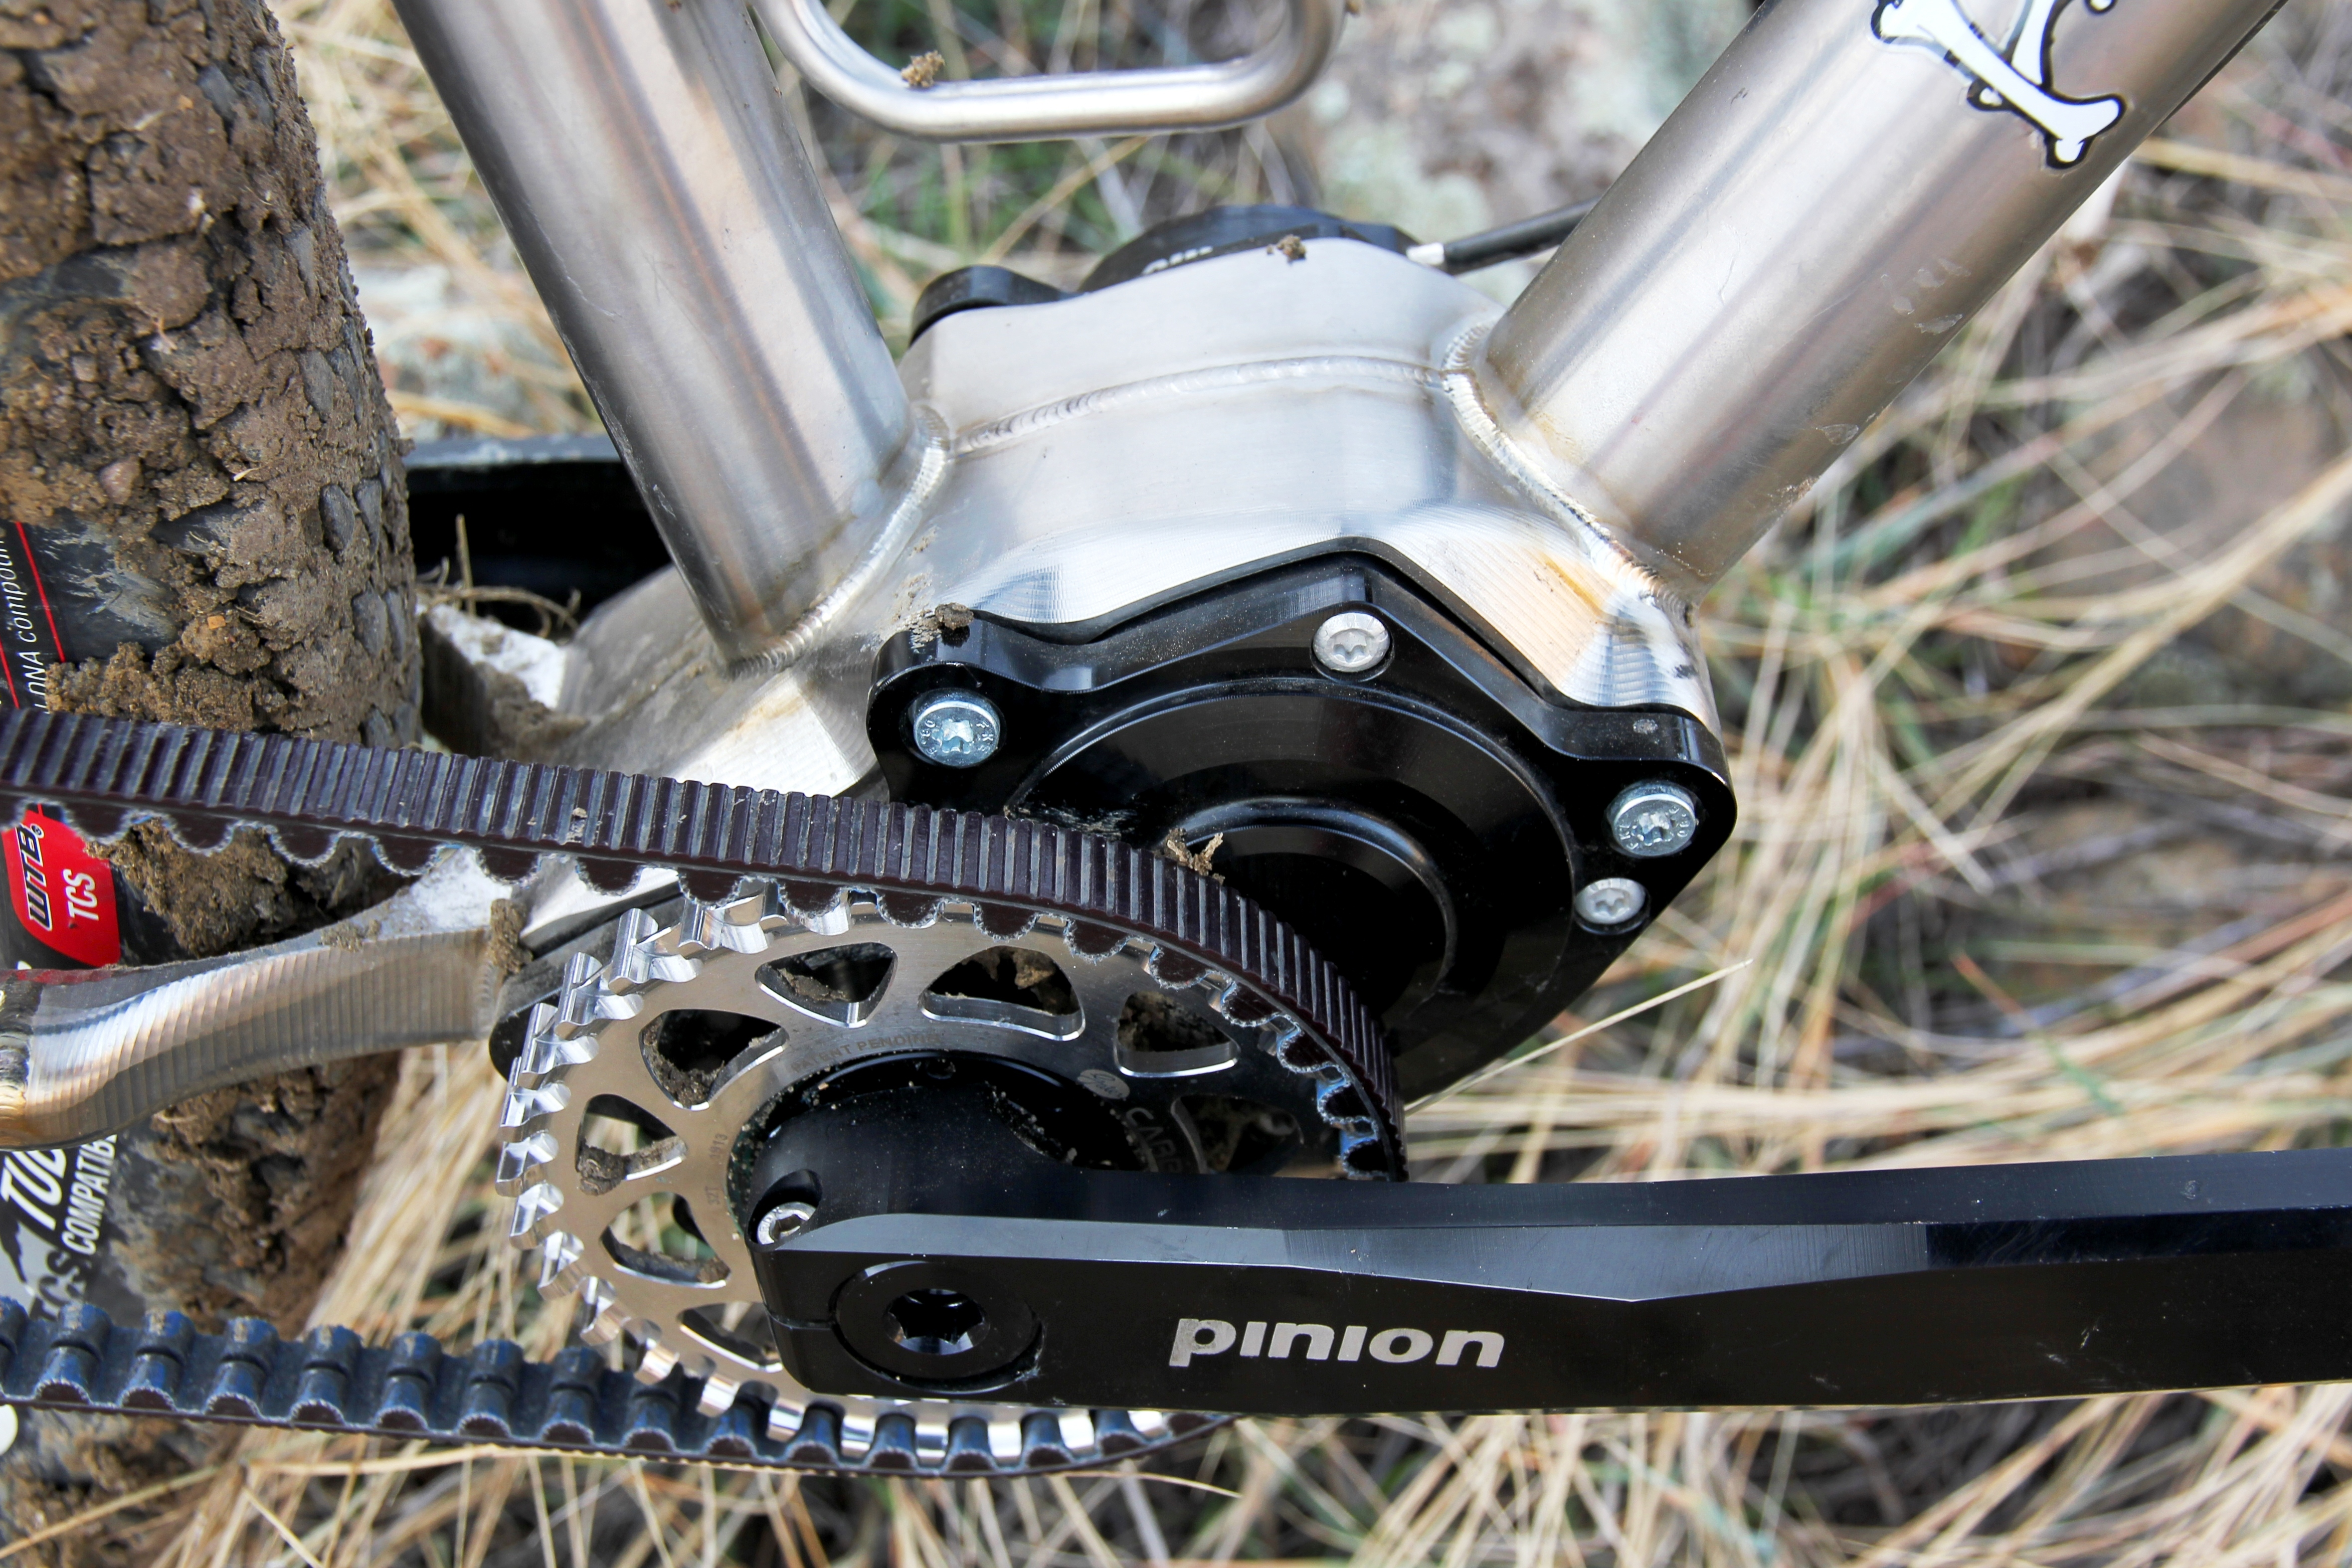 Paragon Pinion gearbox